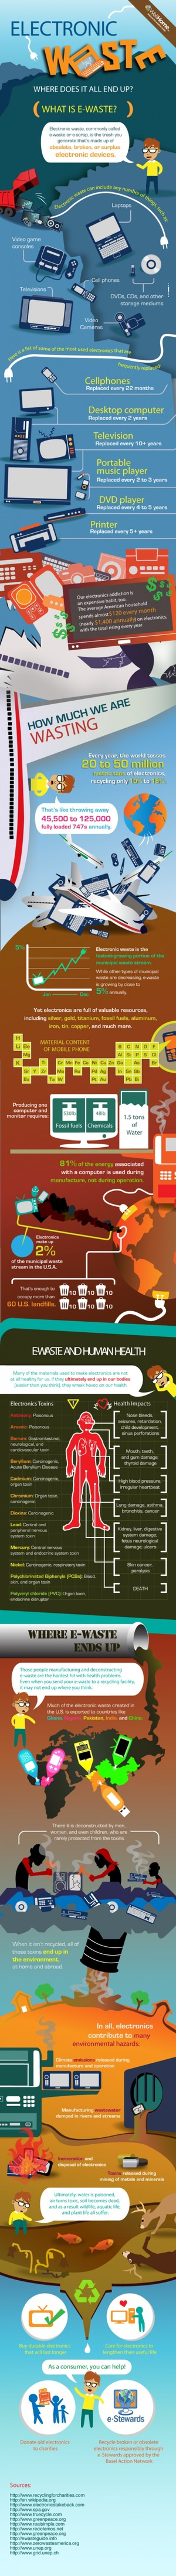 Electronic Waste: Where Does it End Up? | eWasteDirect.com